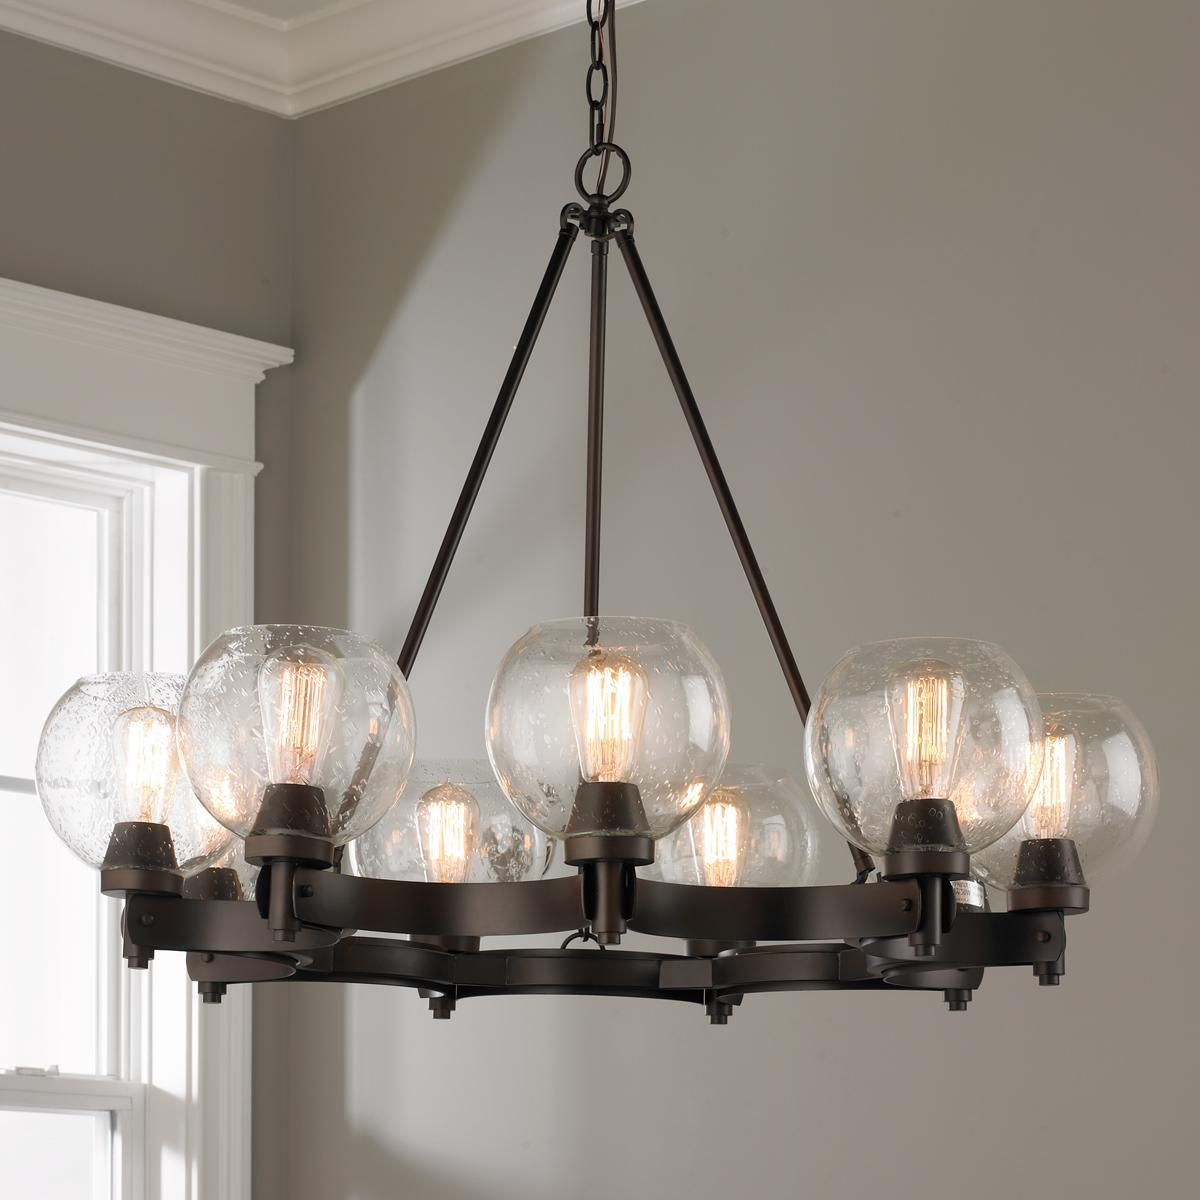 Rustic Seeded Globe Chandelier - 9 Light Possibly for the Living ...